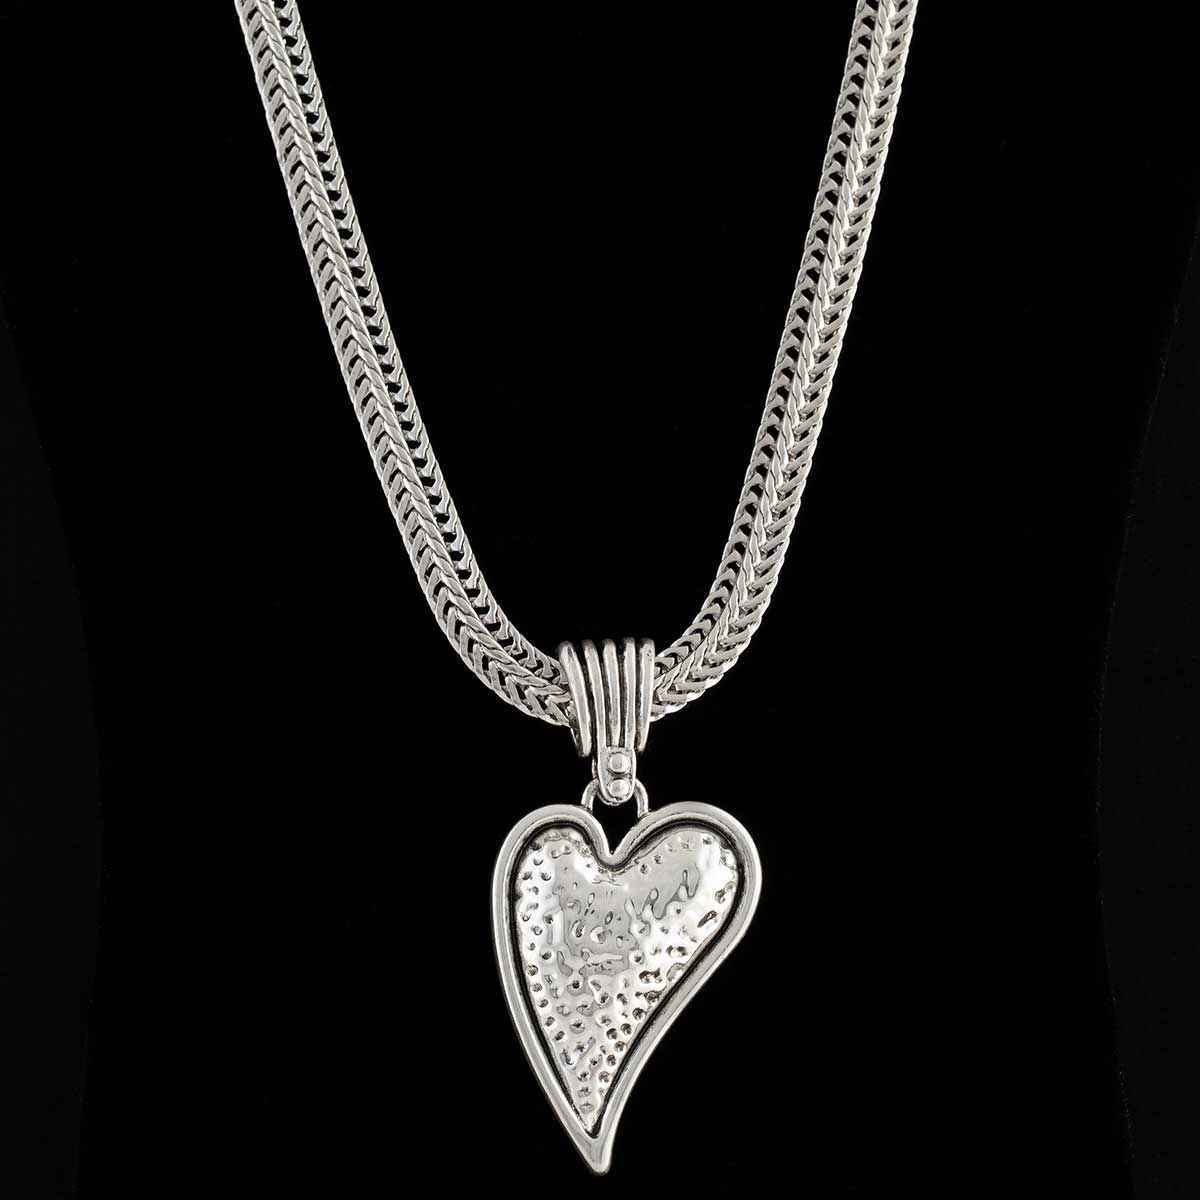 Antique Hammered Silver Heart Necklace on Chain